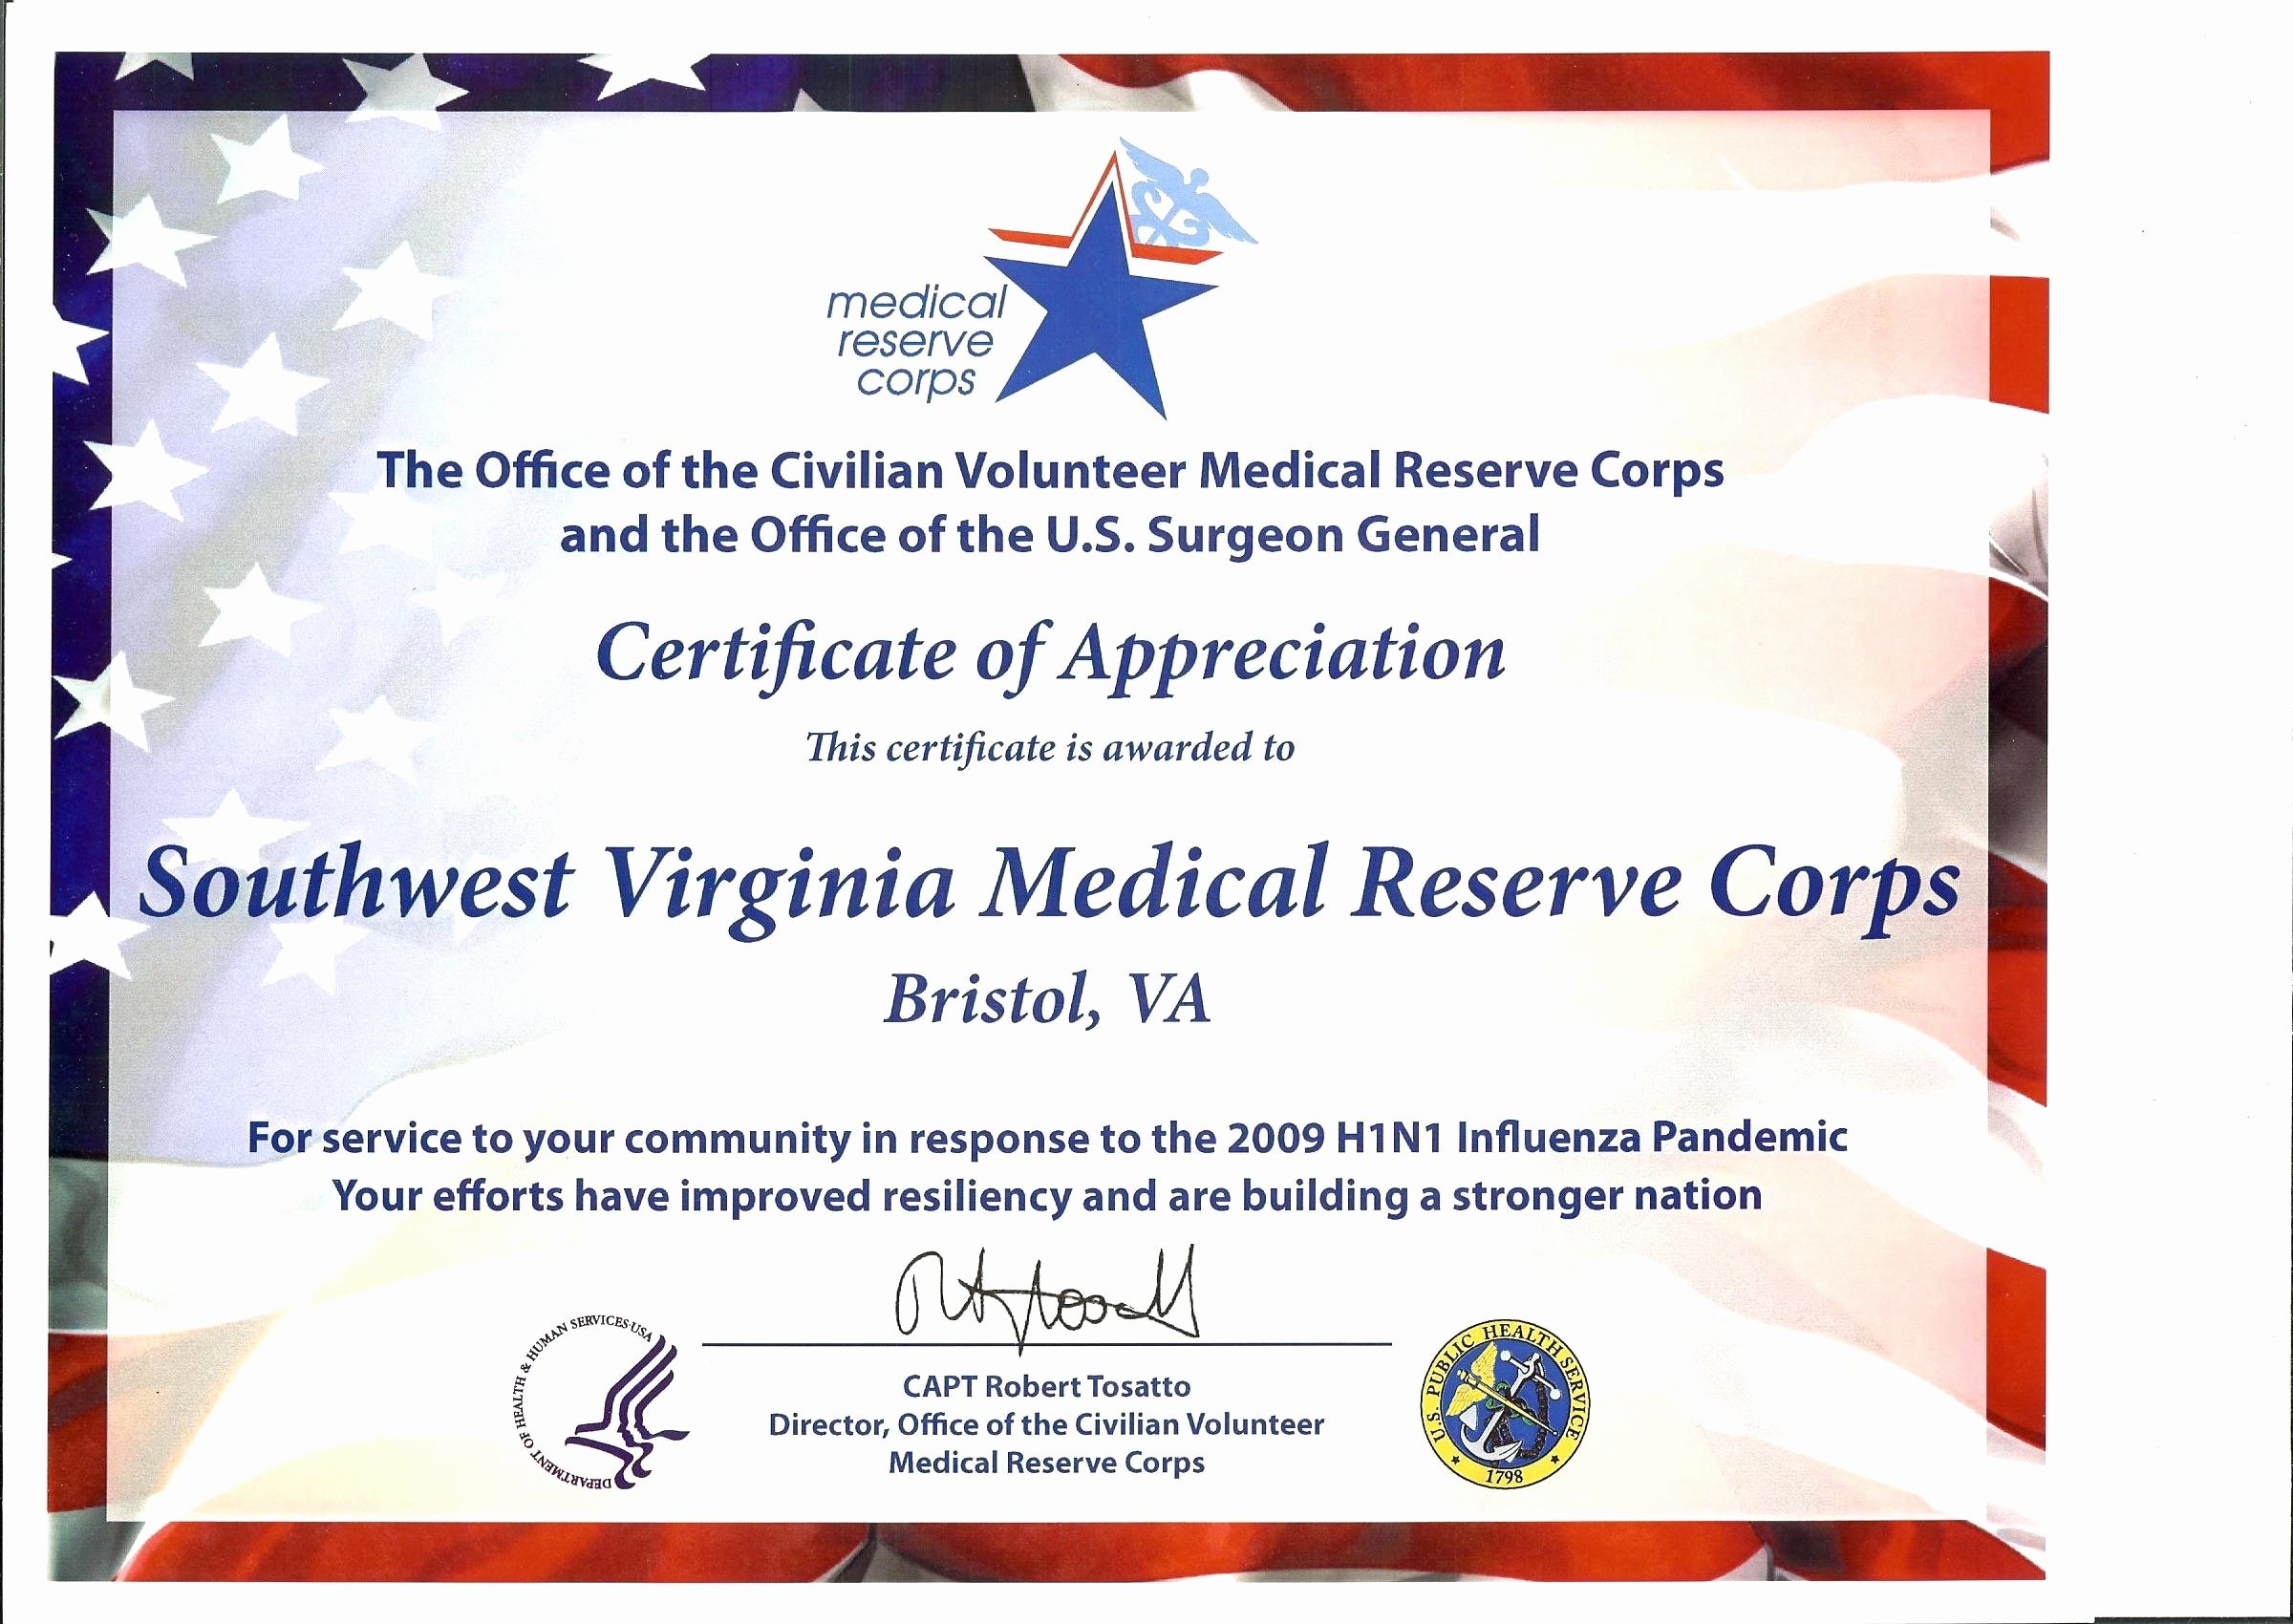 Volunteer Letter Of Appreciation Fresh Newsworthy Notes – southwest Virginia Medical Reserve Corp